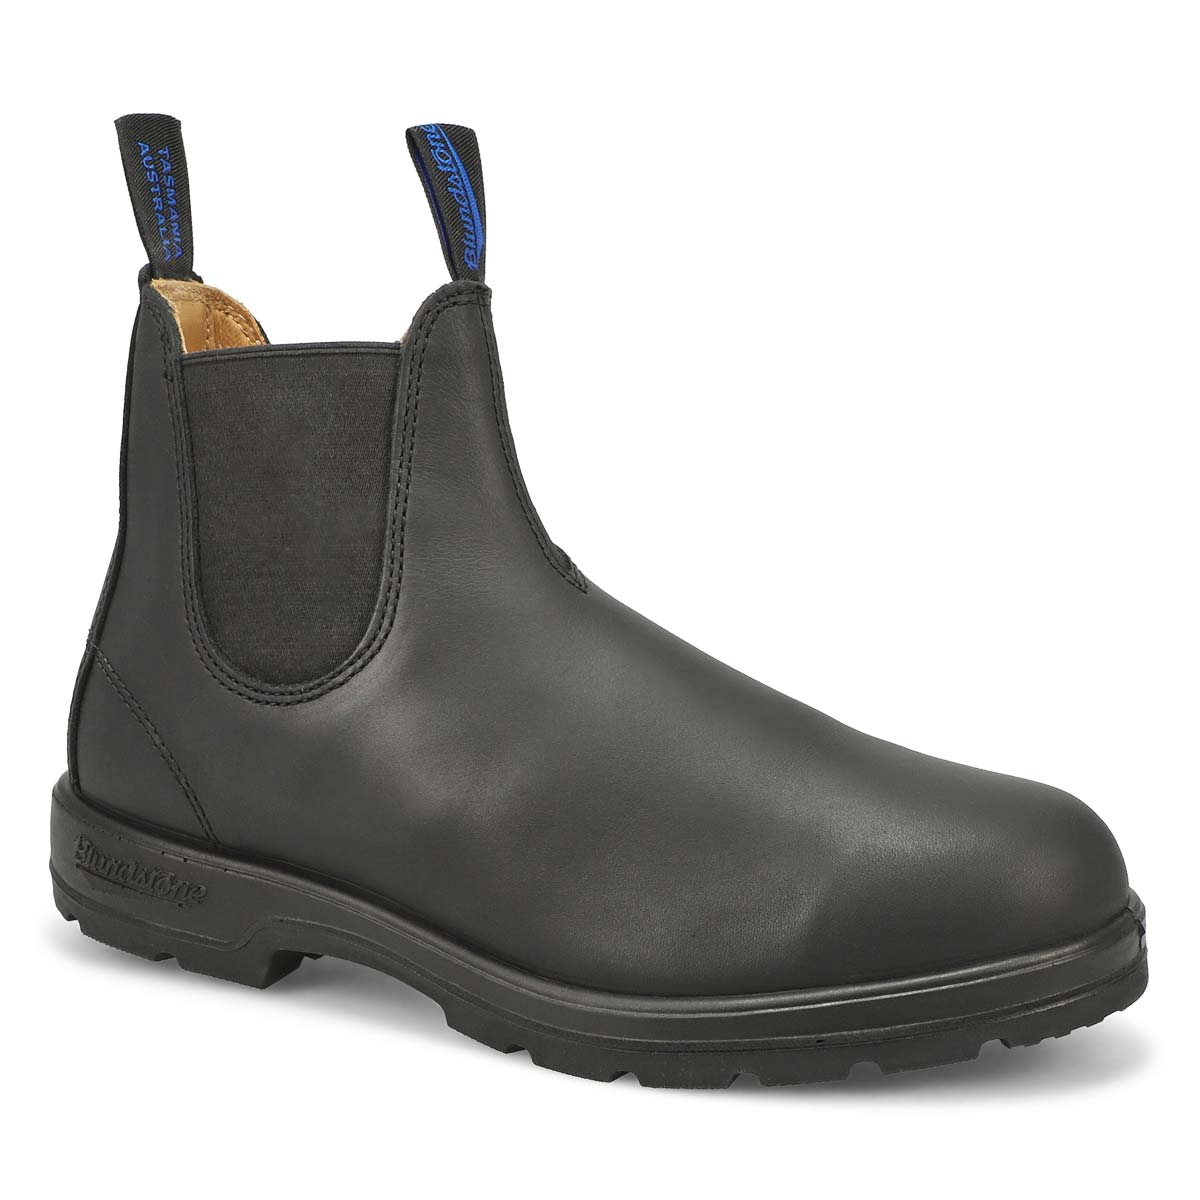 Unisex THE WINTER black waterproof pull-on boots